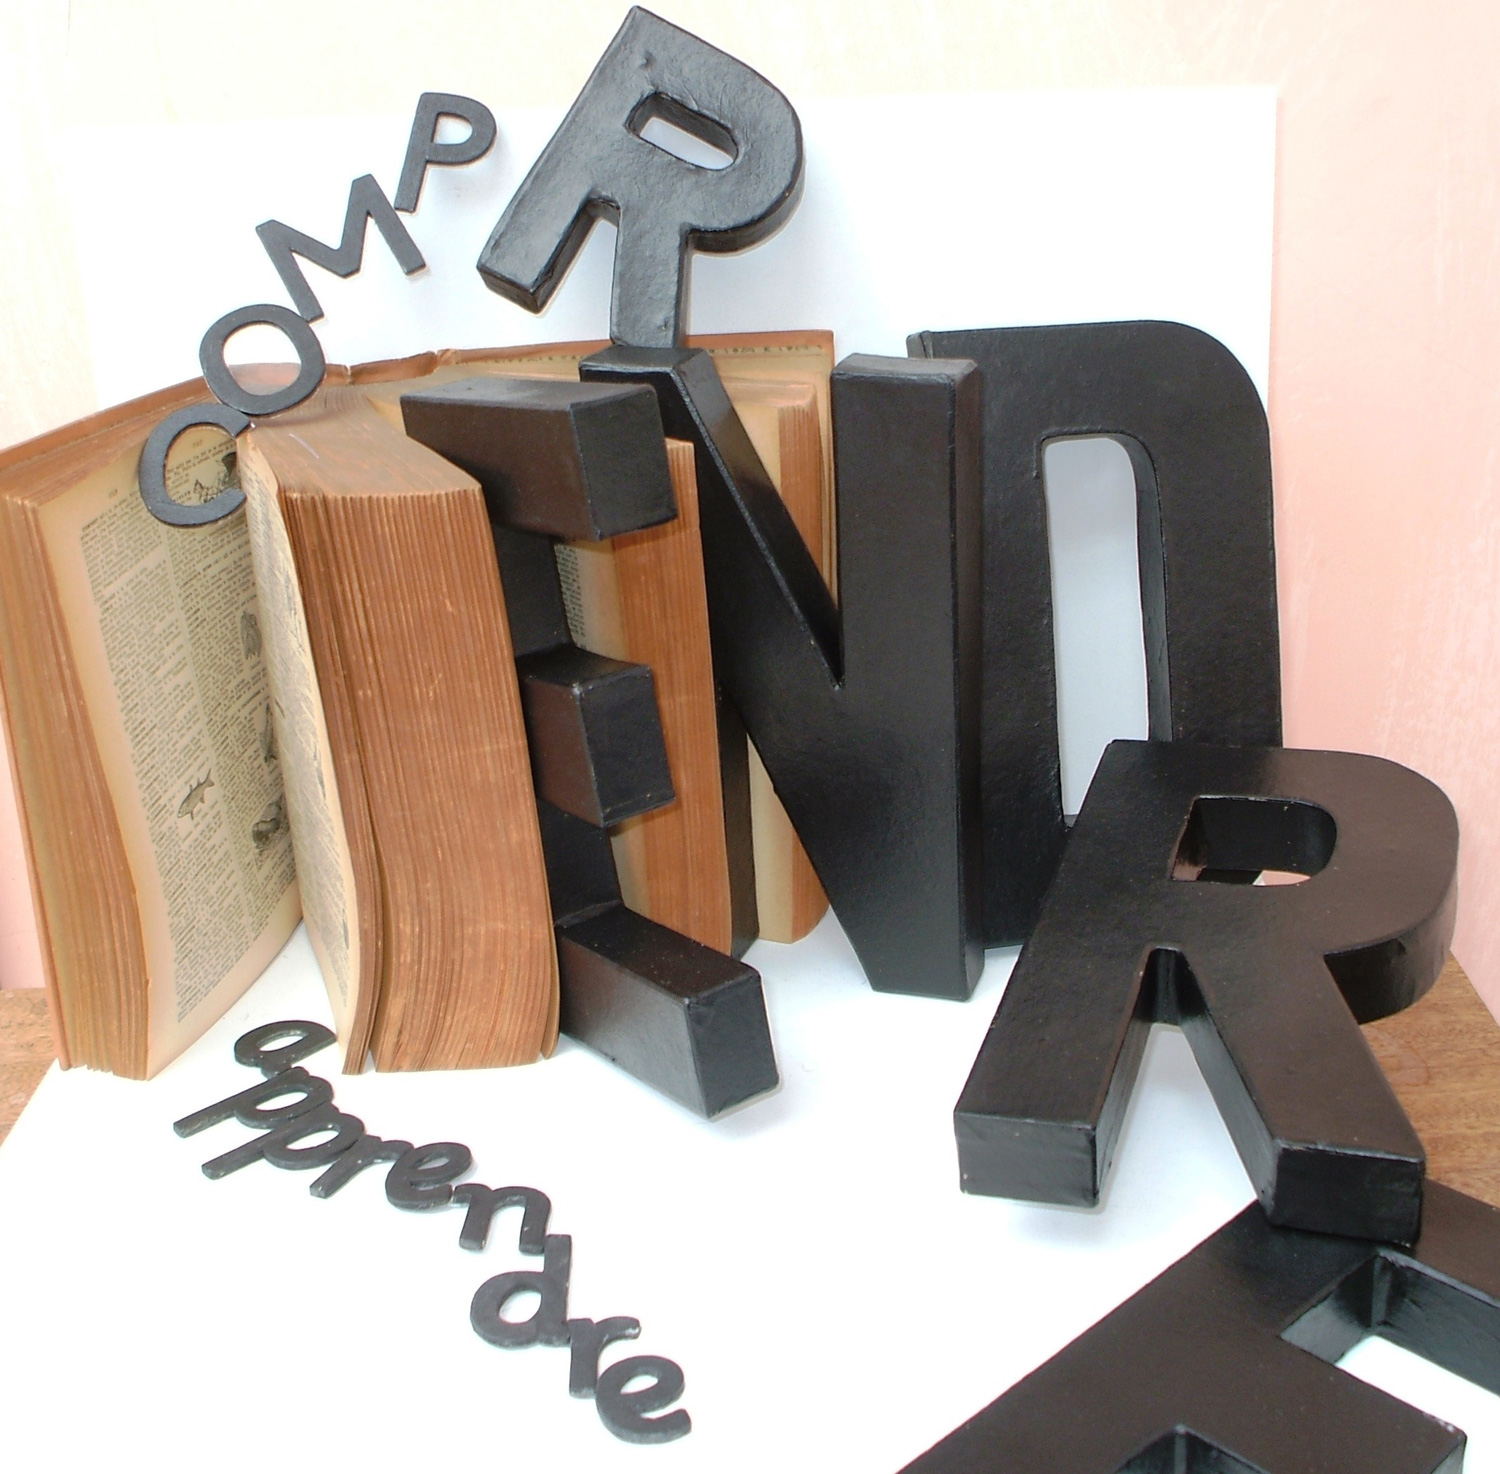 COMPRENDRE Dictionary, cardboard and wood